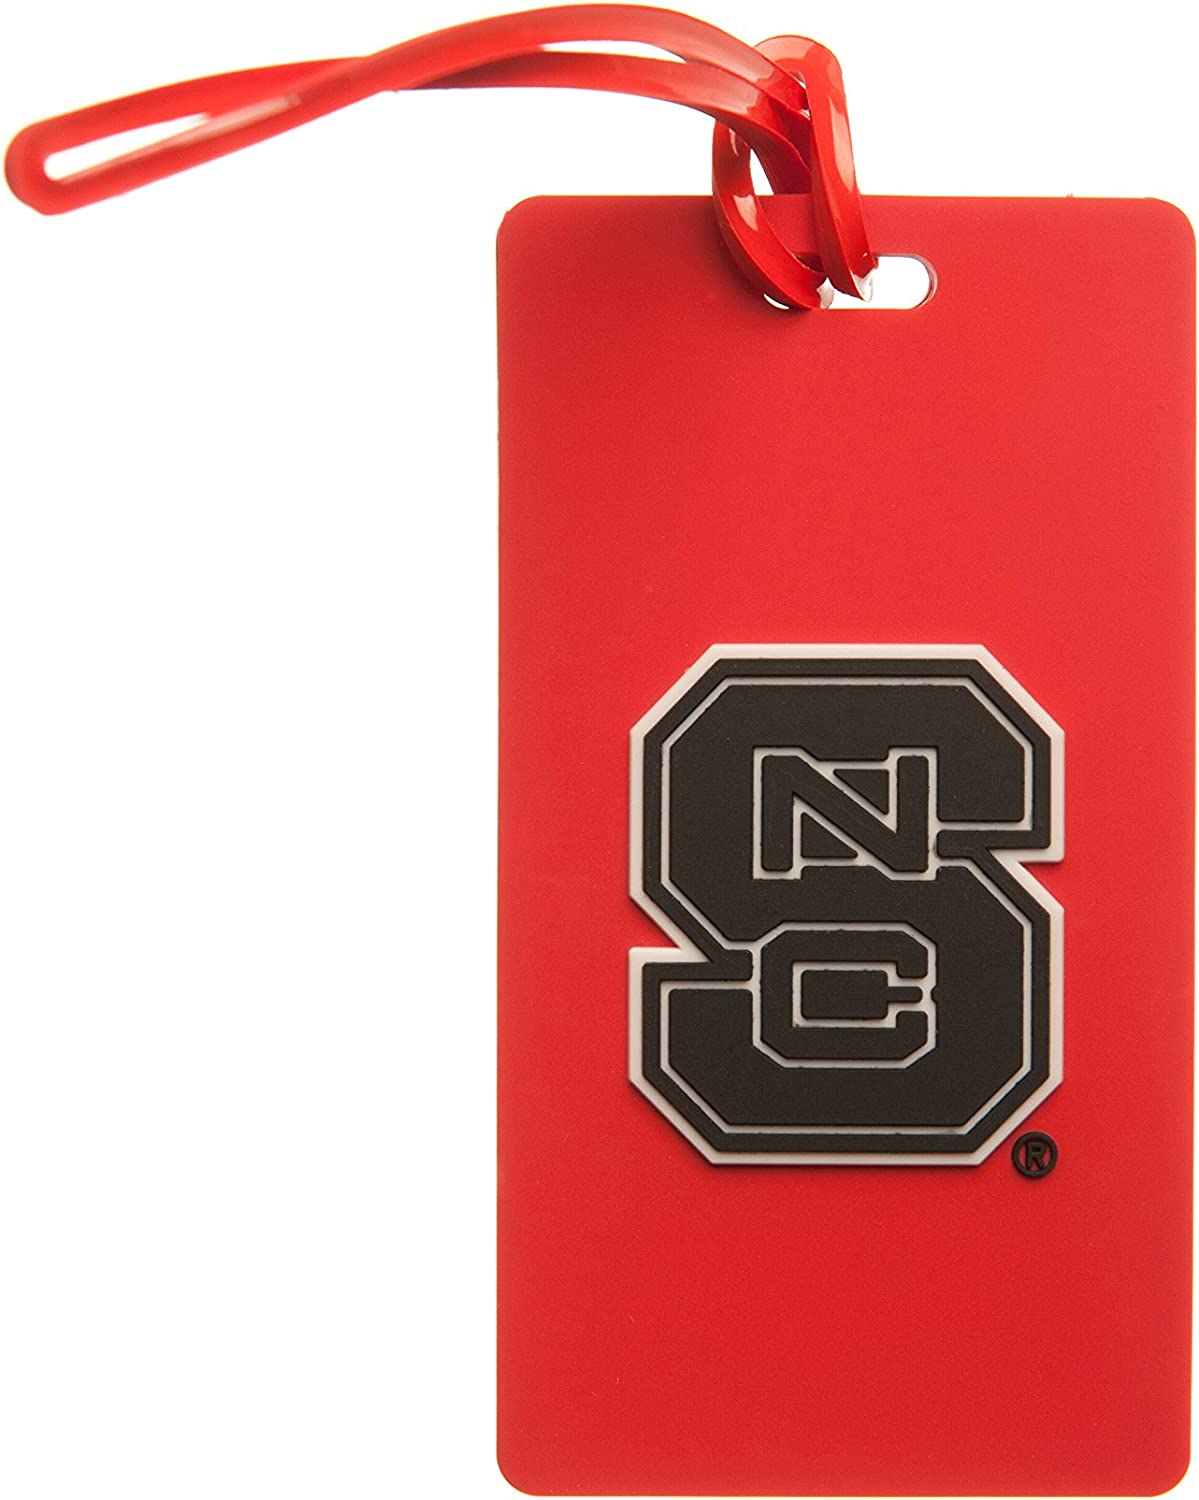 North Carolina State Wolfpack NCSU Phoenix Mall Cheap mail order specialty store Tag Luggage